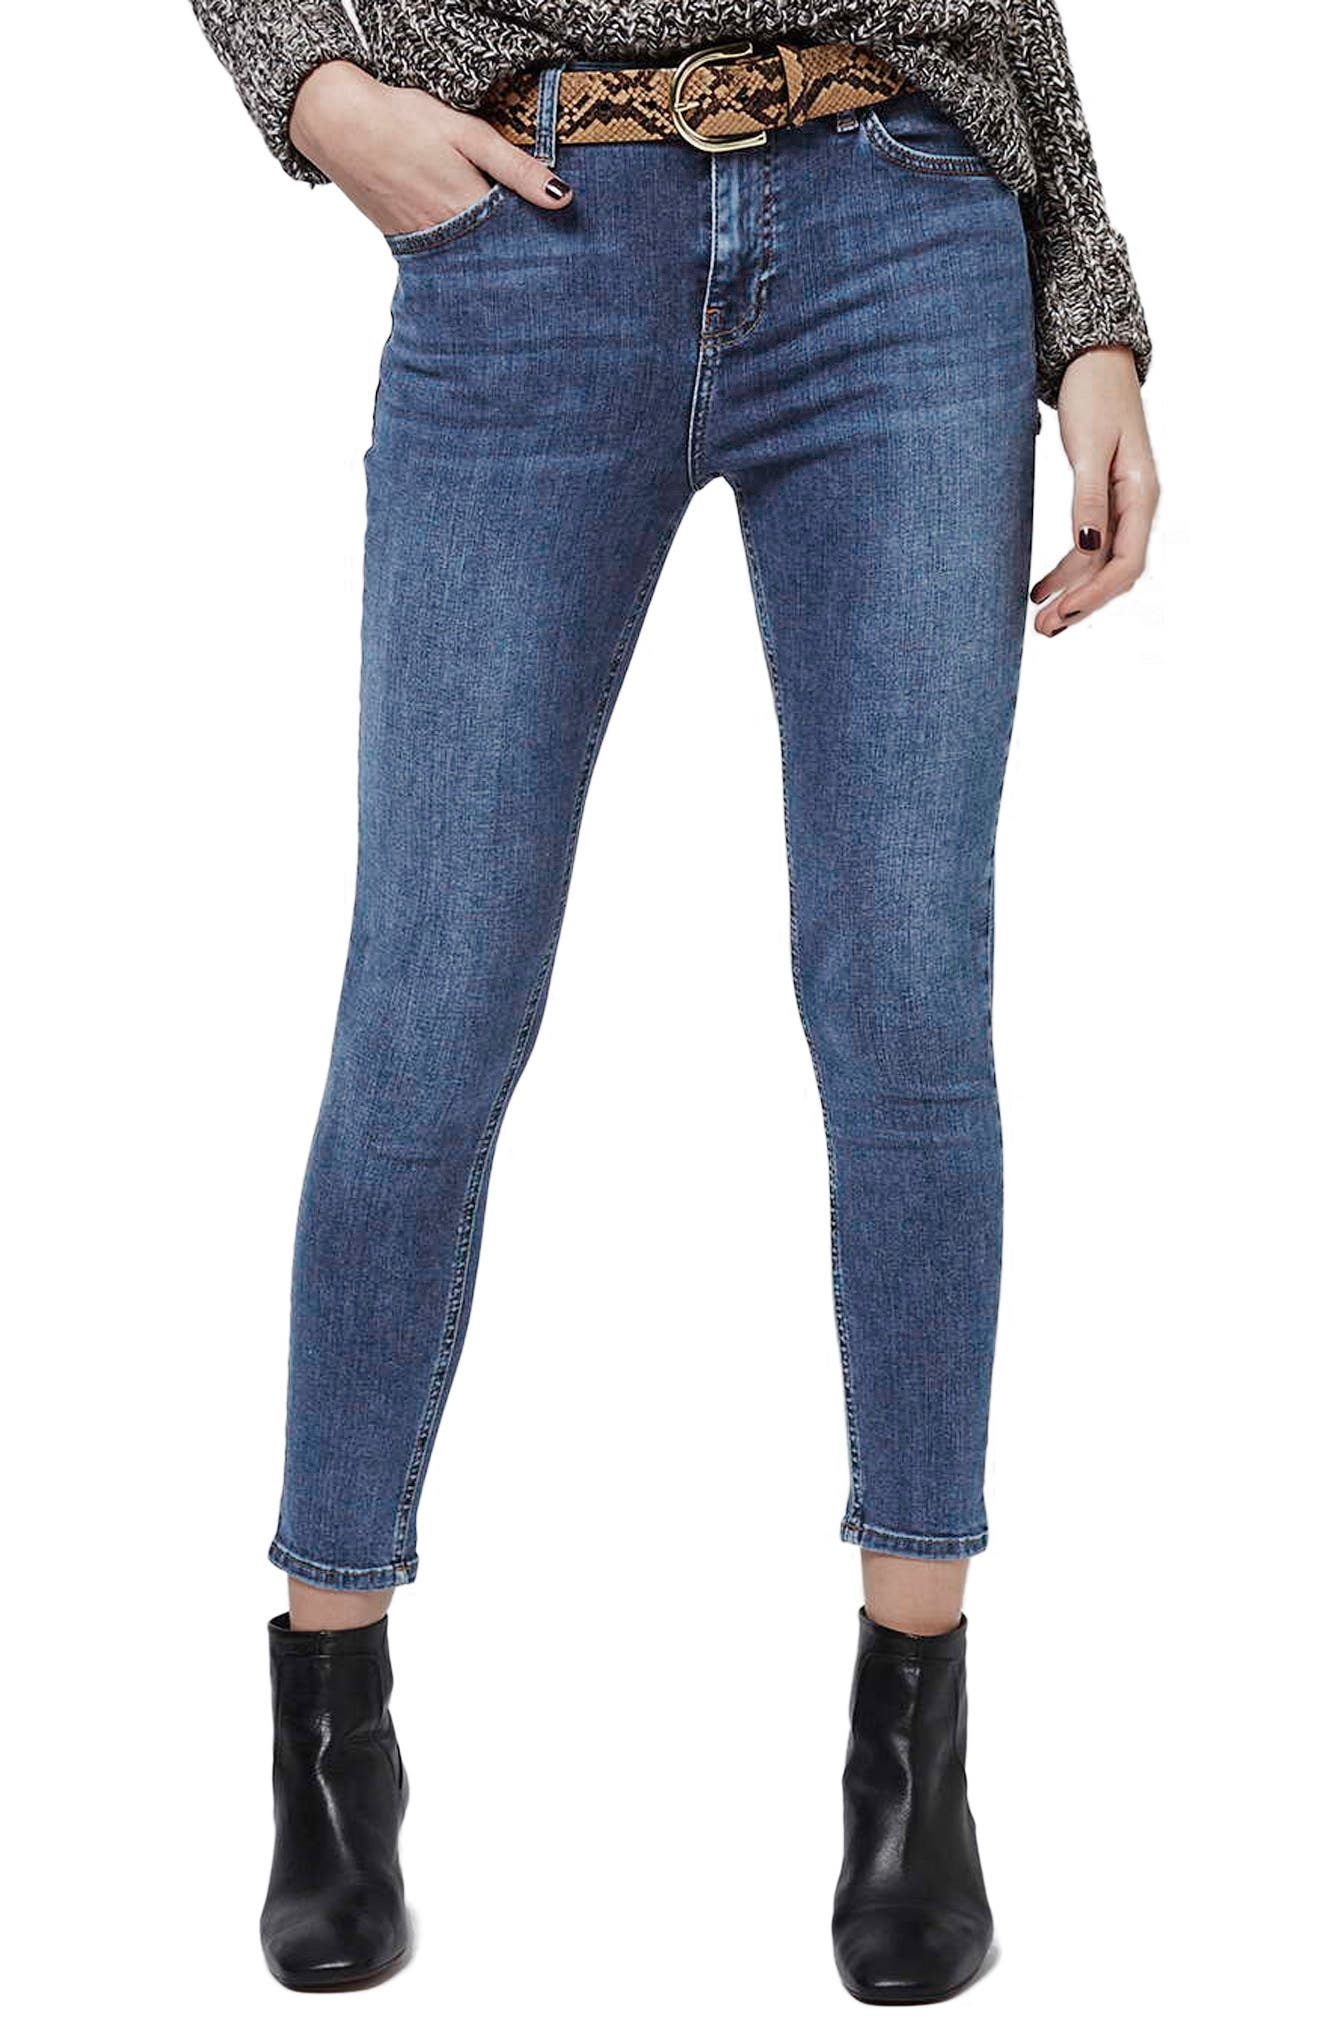 TOPSHOP, 'Jamie' High Rise Ankle Skinny Jeans, Alternate thumbnail 4, color, MID DENIM